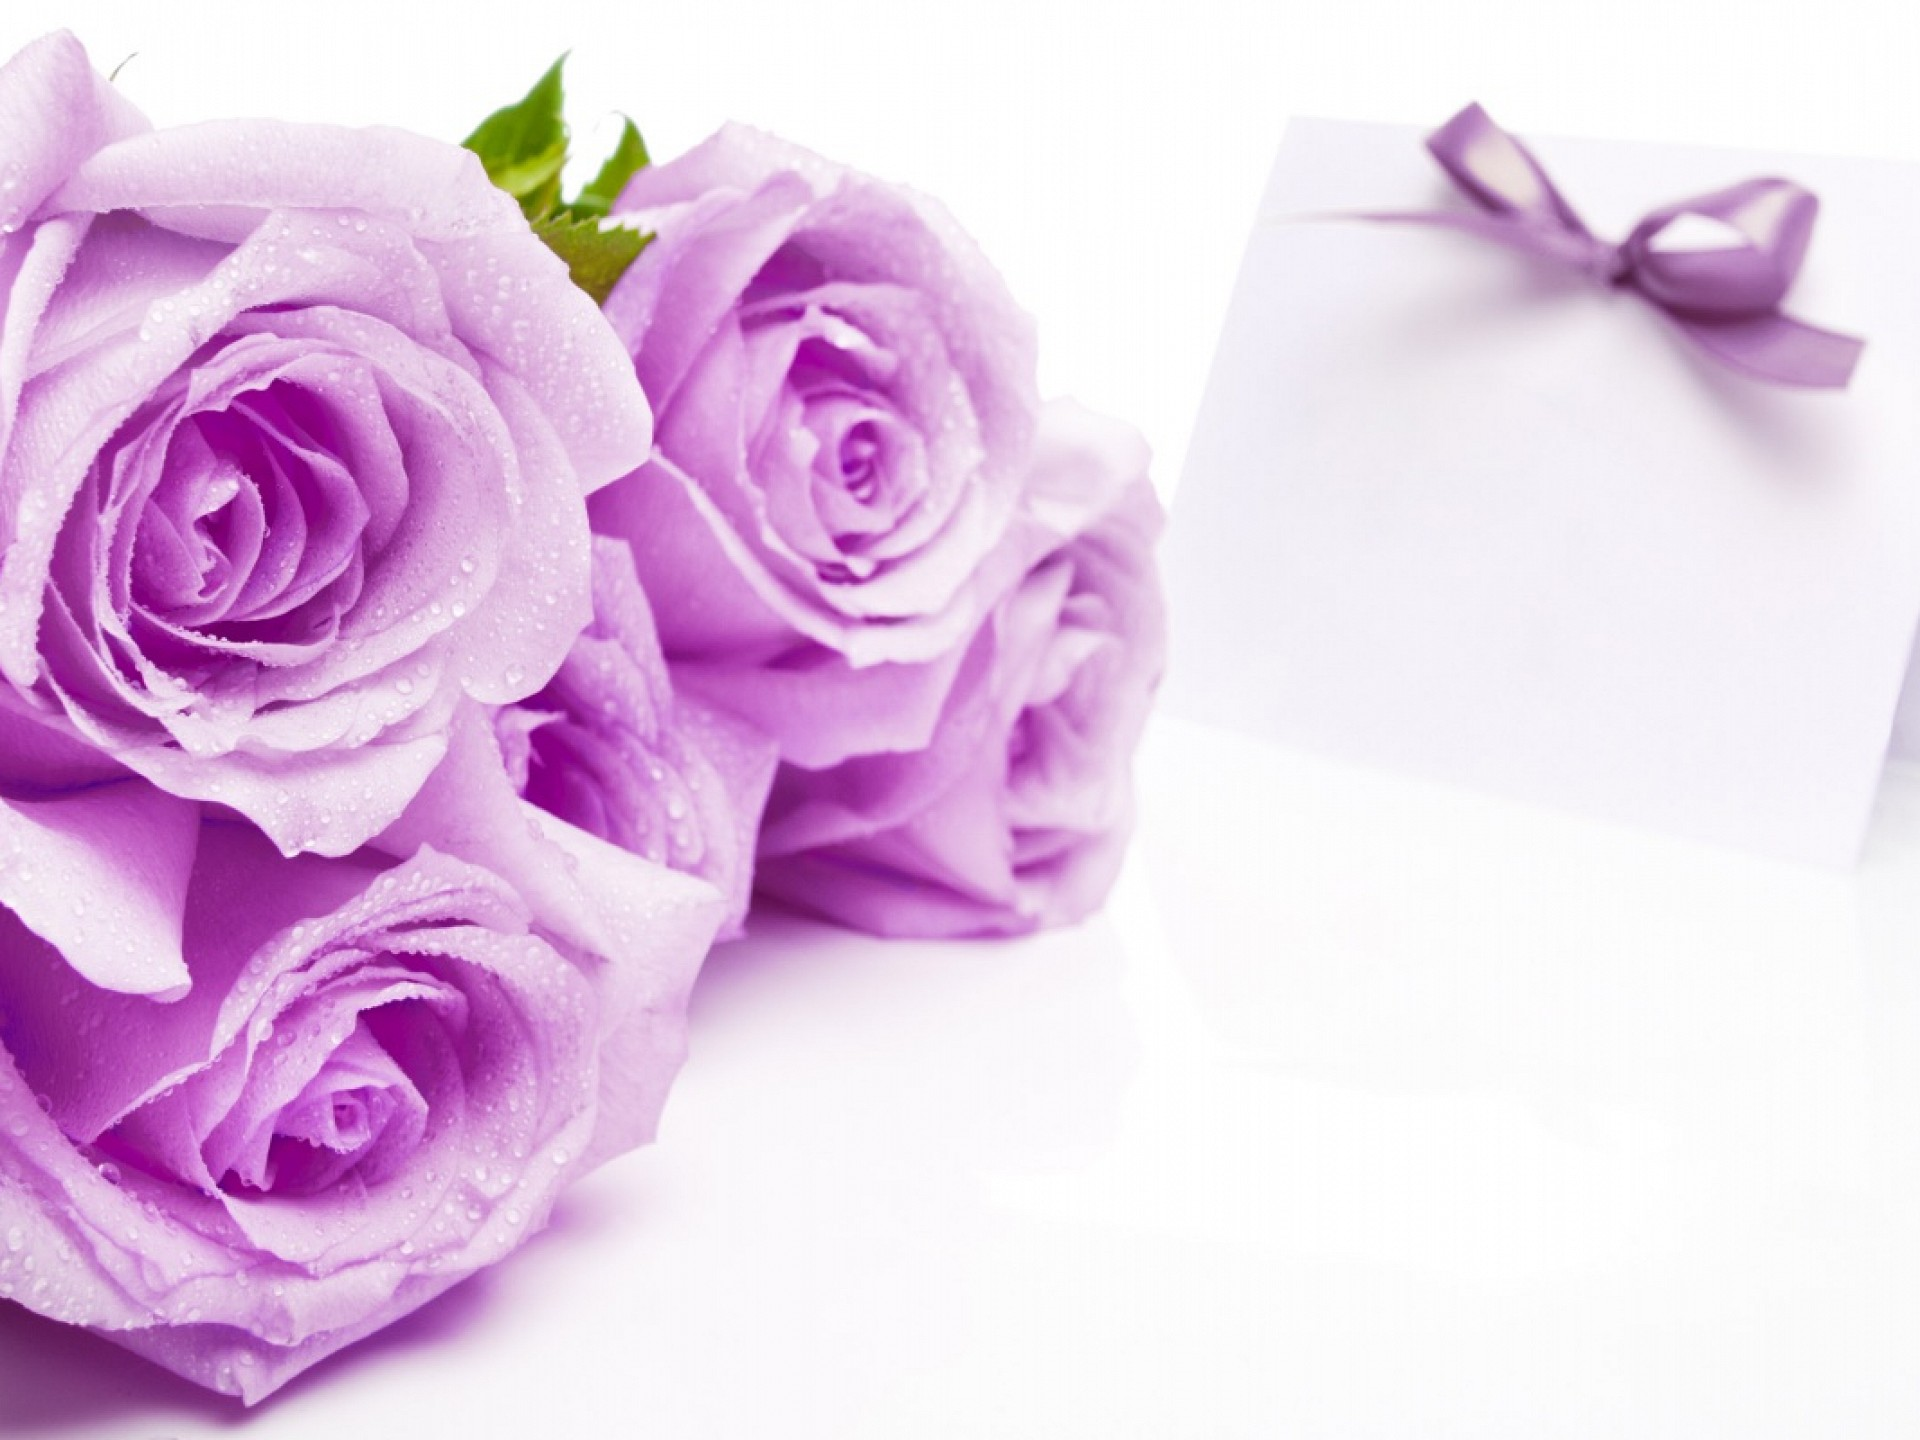 Magnificent purple roses roses wallpaper 34611045 fanpop for Purple rose pictures